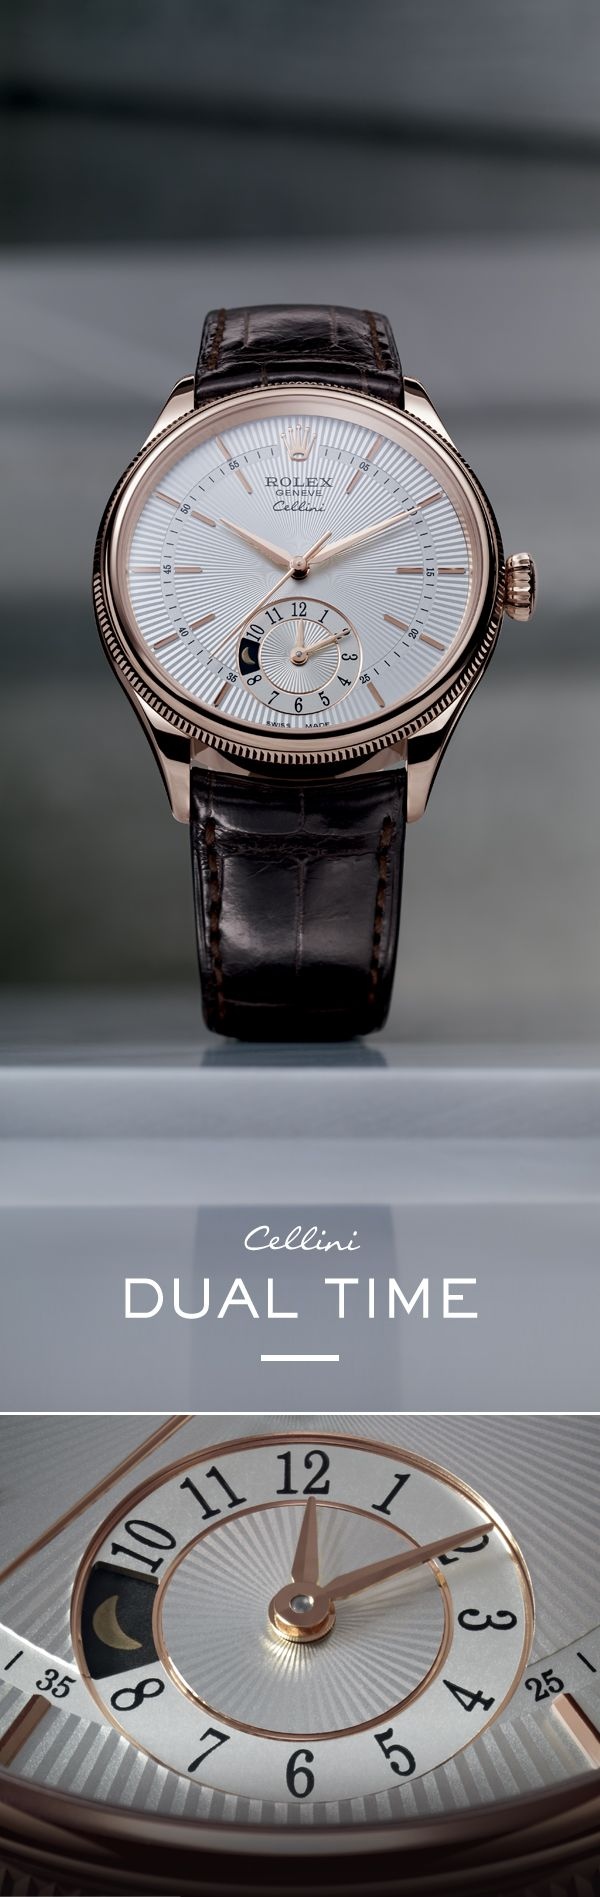 """The Rolex Cellini Dual Time 39 mm in Everose gold with a silver dial featuring a """"rayon flammé de la gloire"""" guilloche motif and mounted on an alligator leather strap. #RolexOfficial #Baselworld"""